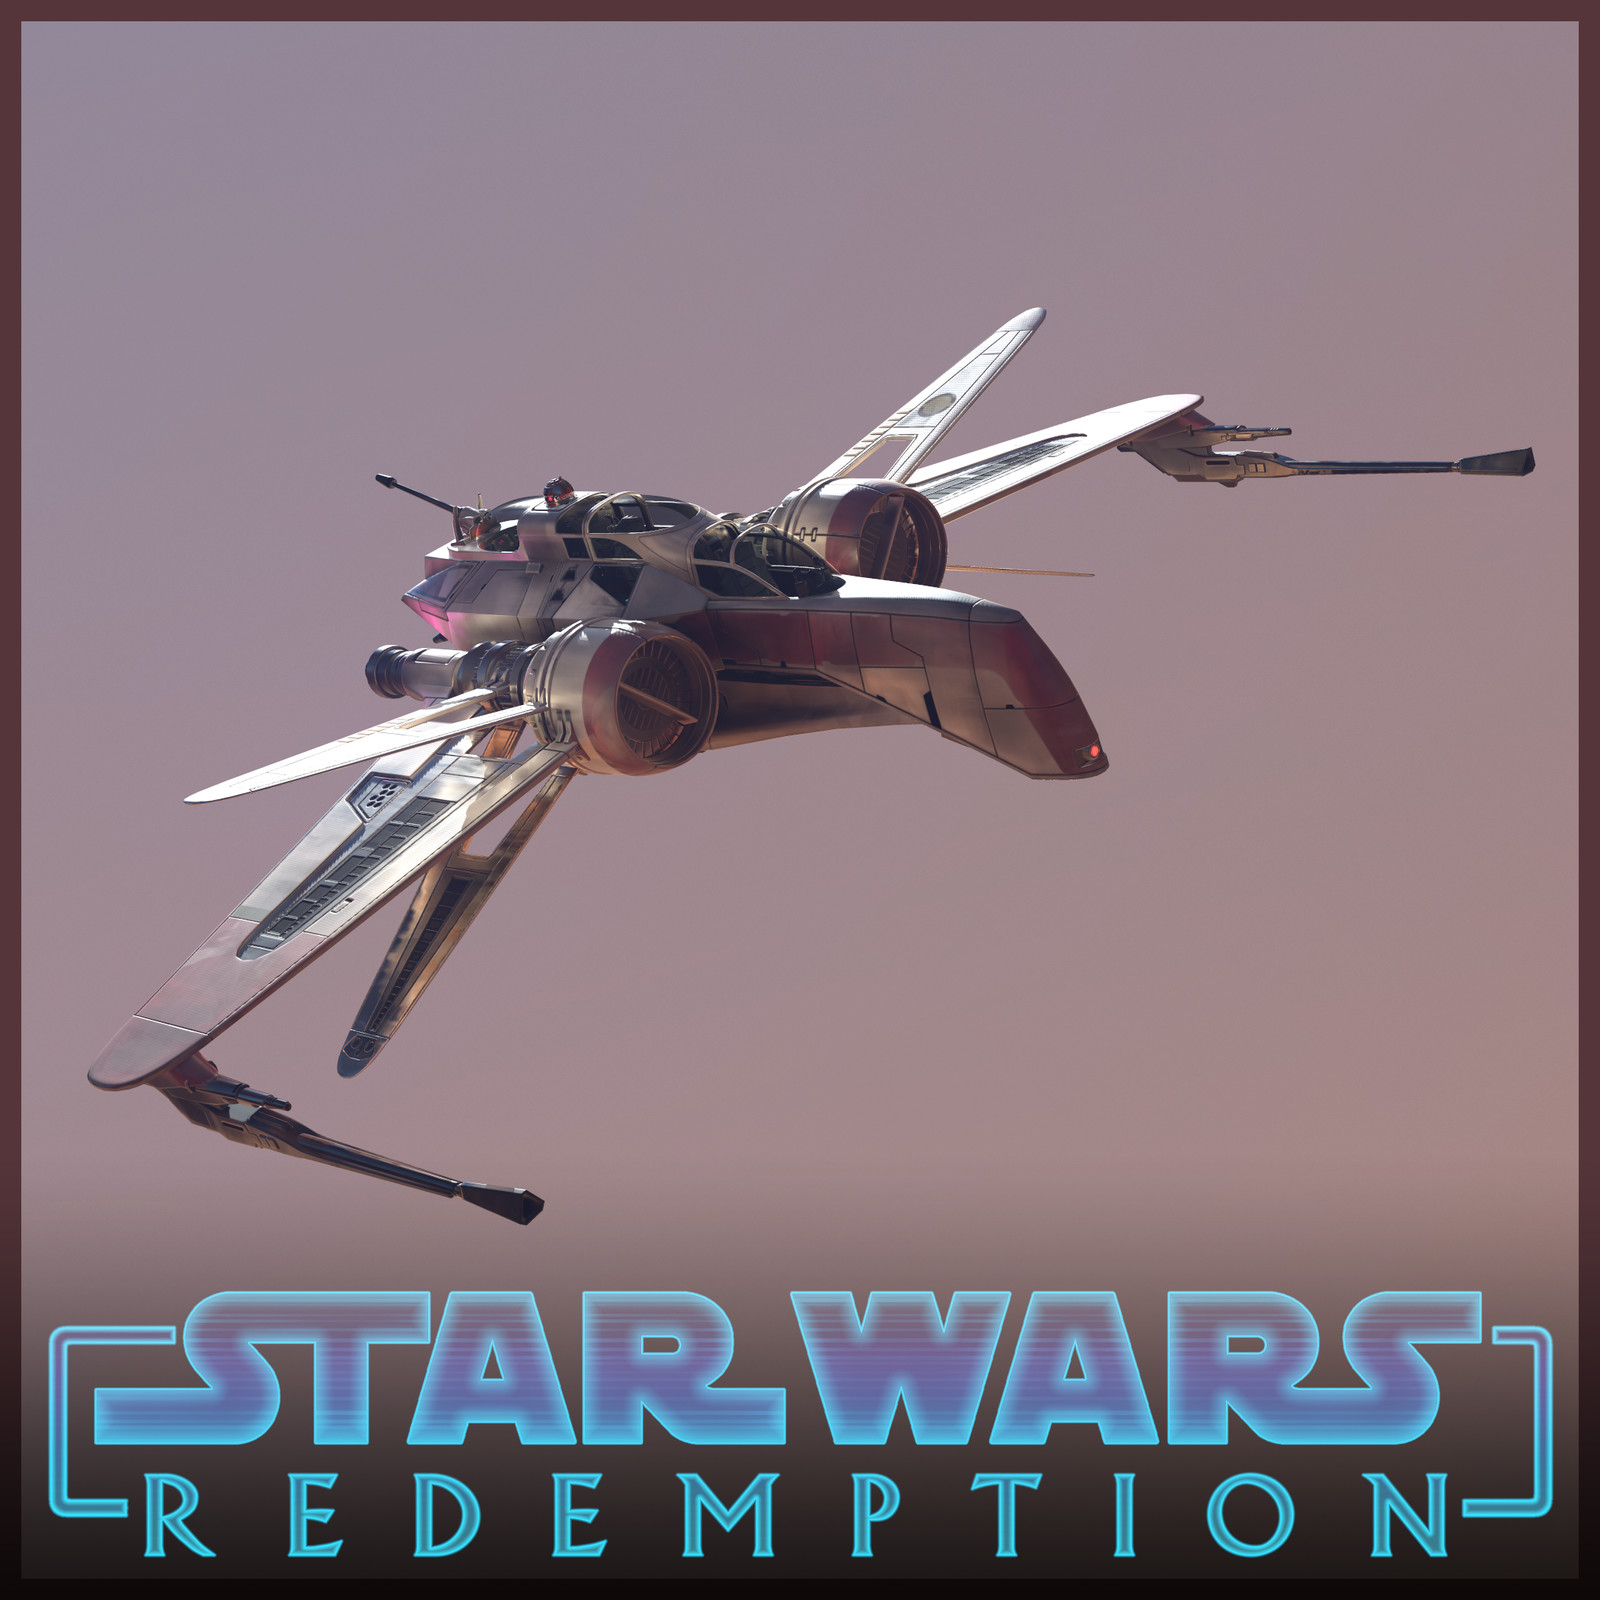 Star Wars - Redemption | Starfighter ARC-170